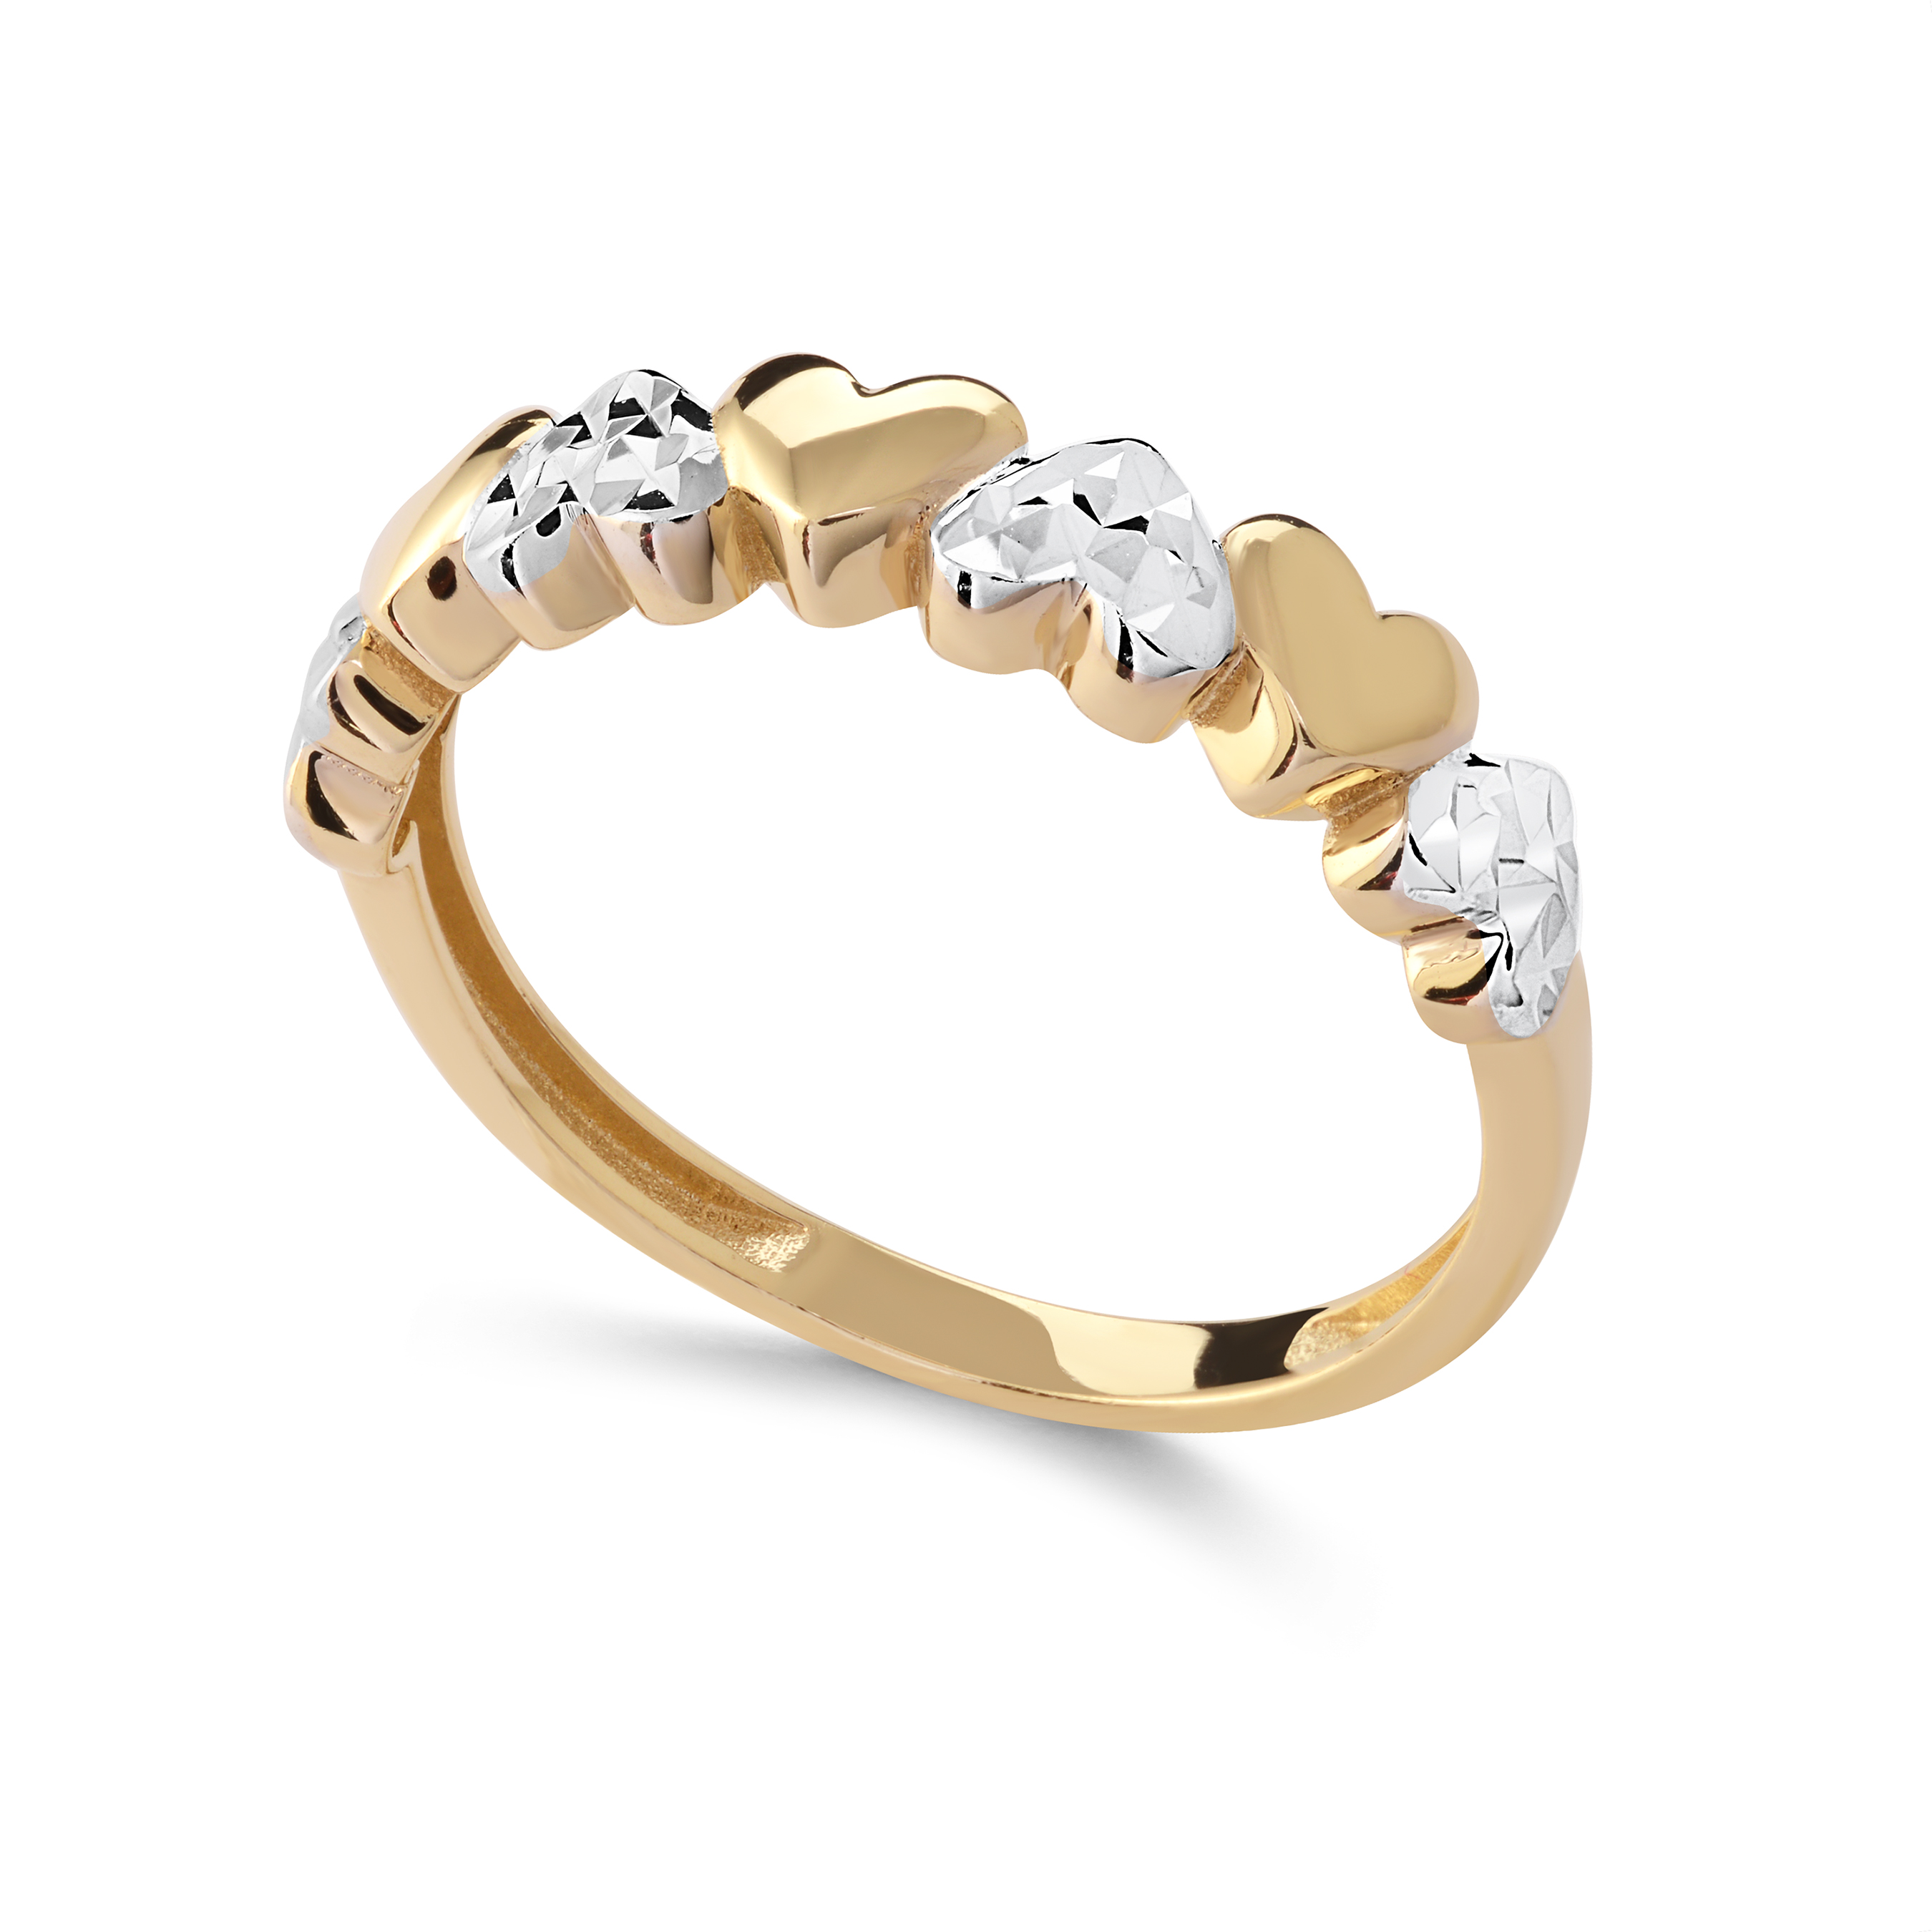 Women's Heart band - 10K 2-tone Gold